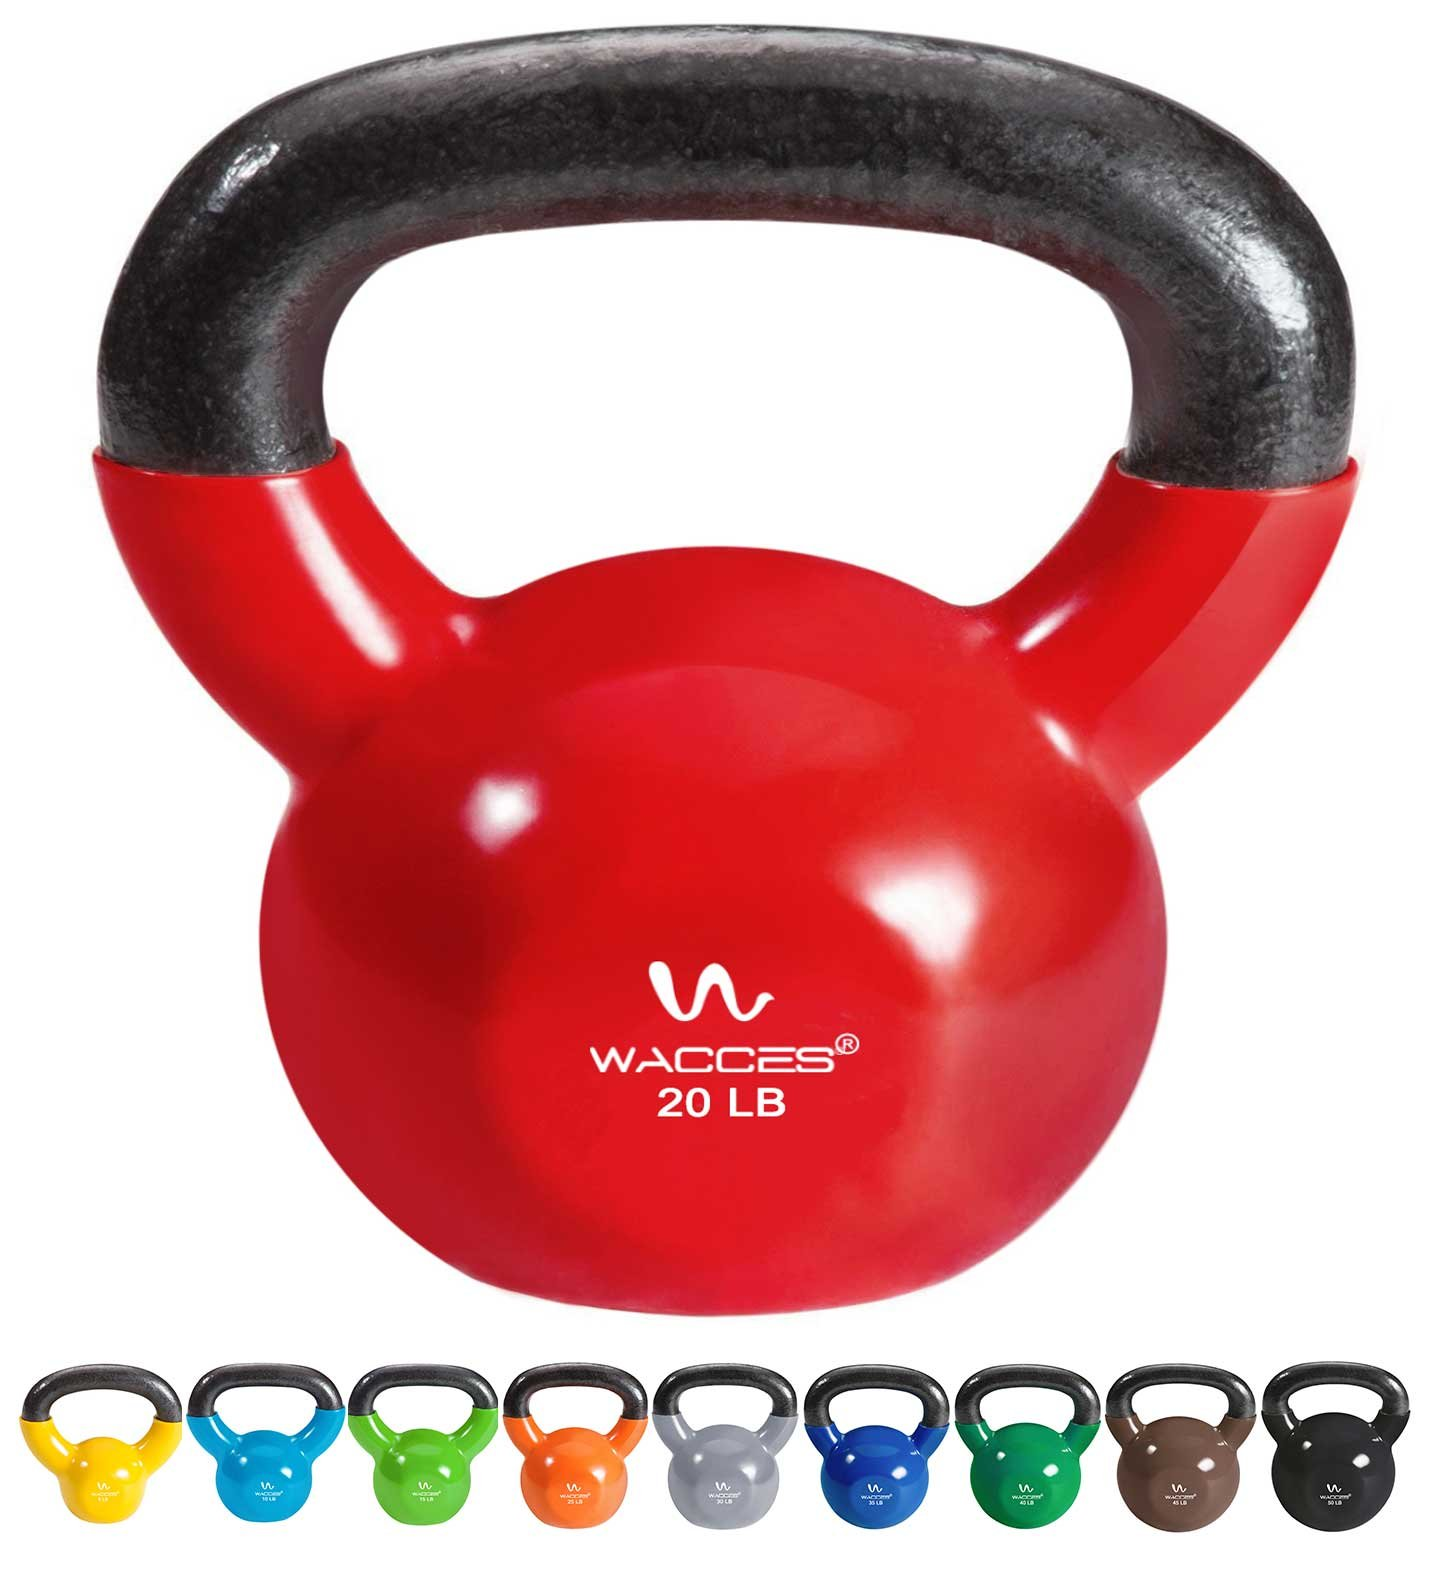 Wacces Single Vinyl Dipped Kettlebell for Croos Training, Home Exercise, Workout 20LB